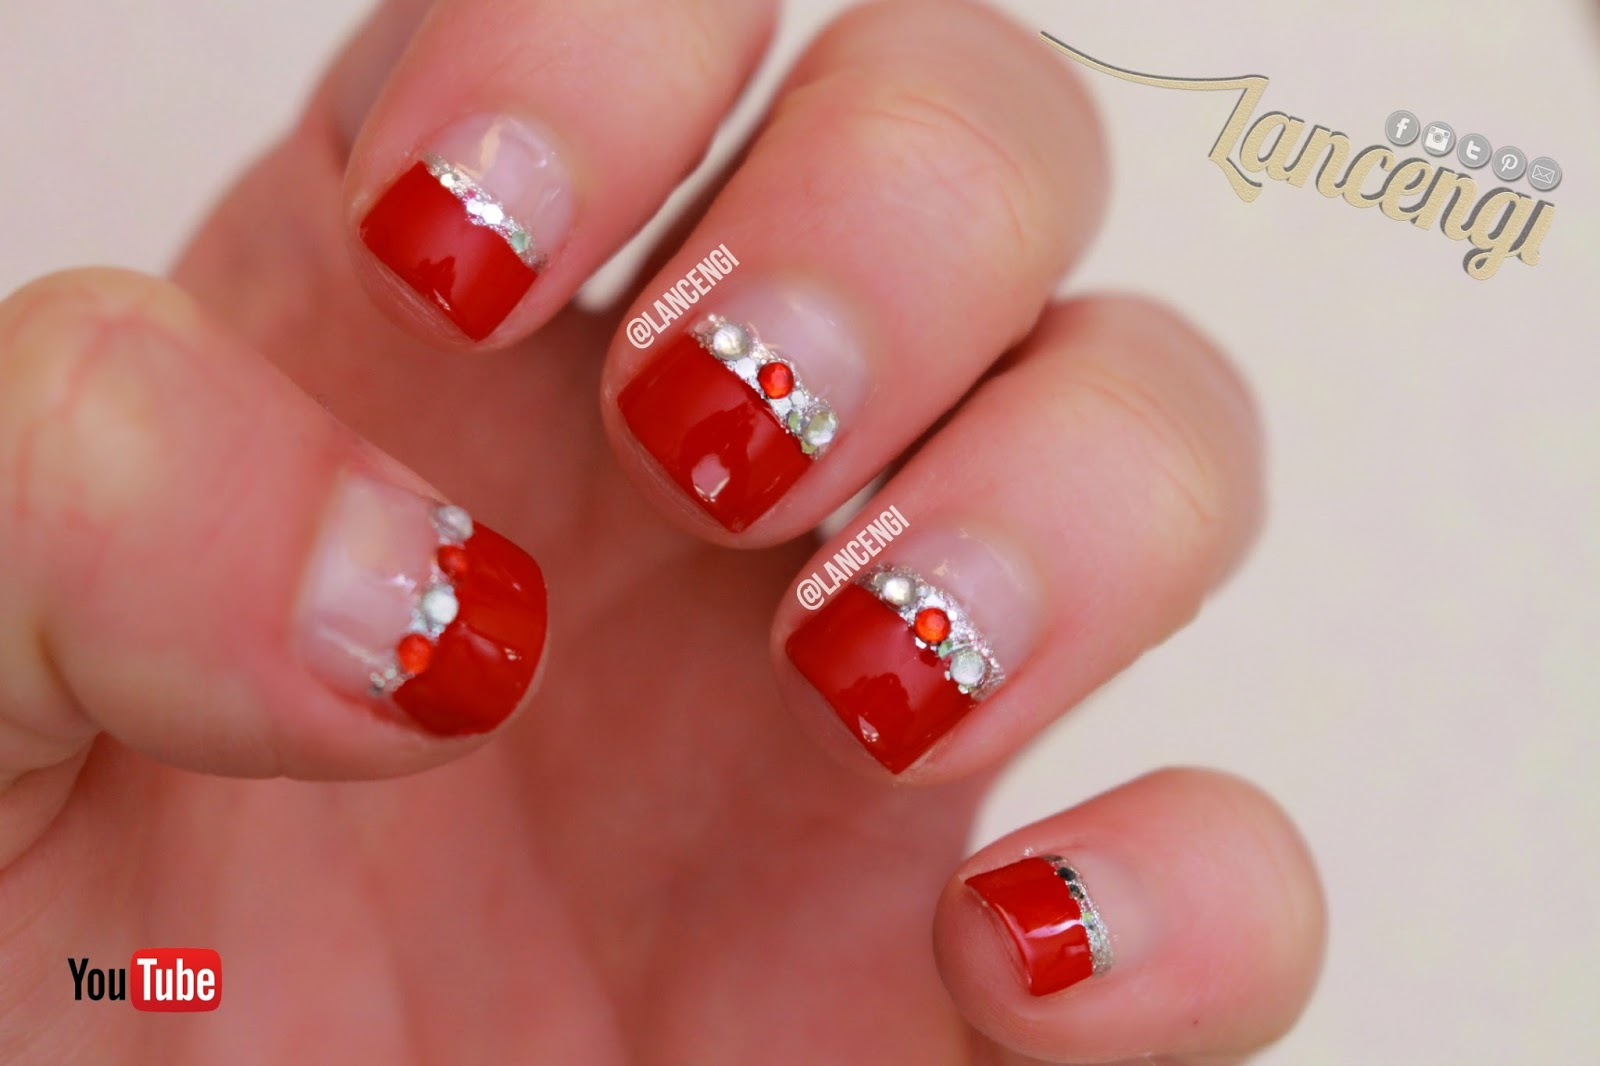 LancenGi: Easy Nail Art for Beginners - Red Silver Wedding French Nails